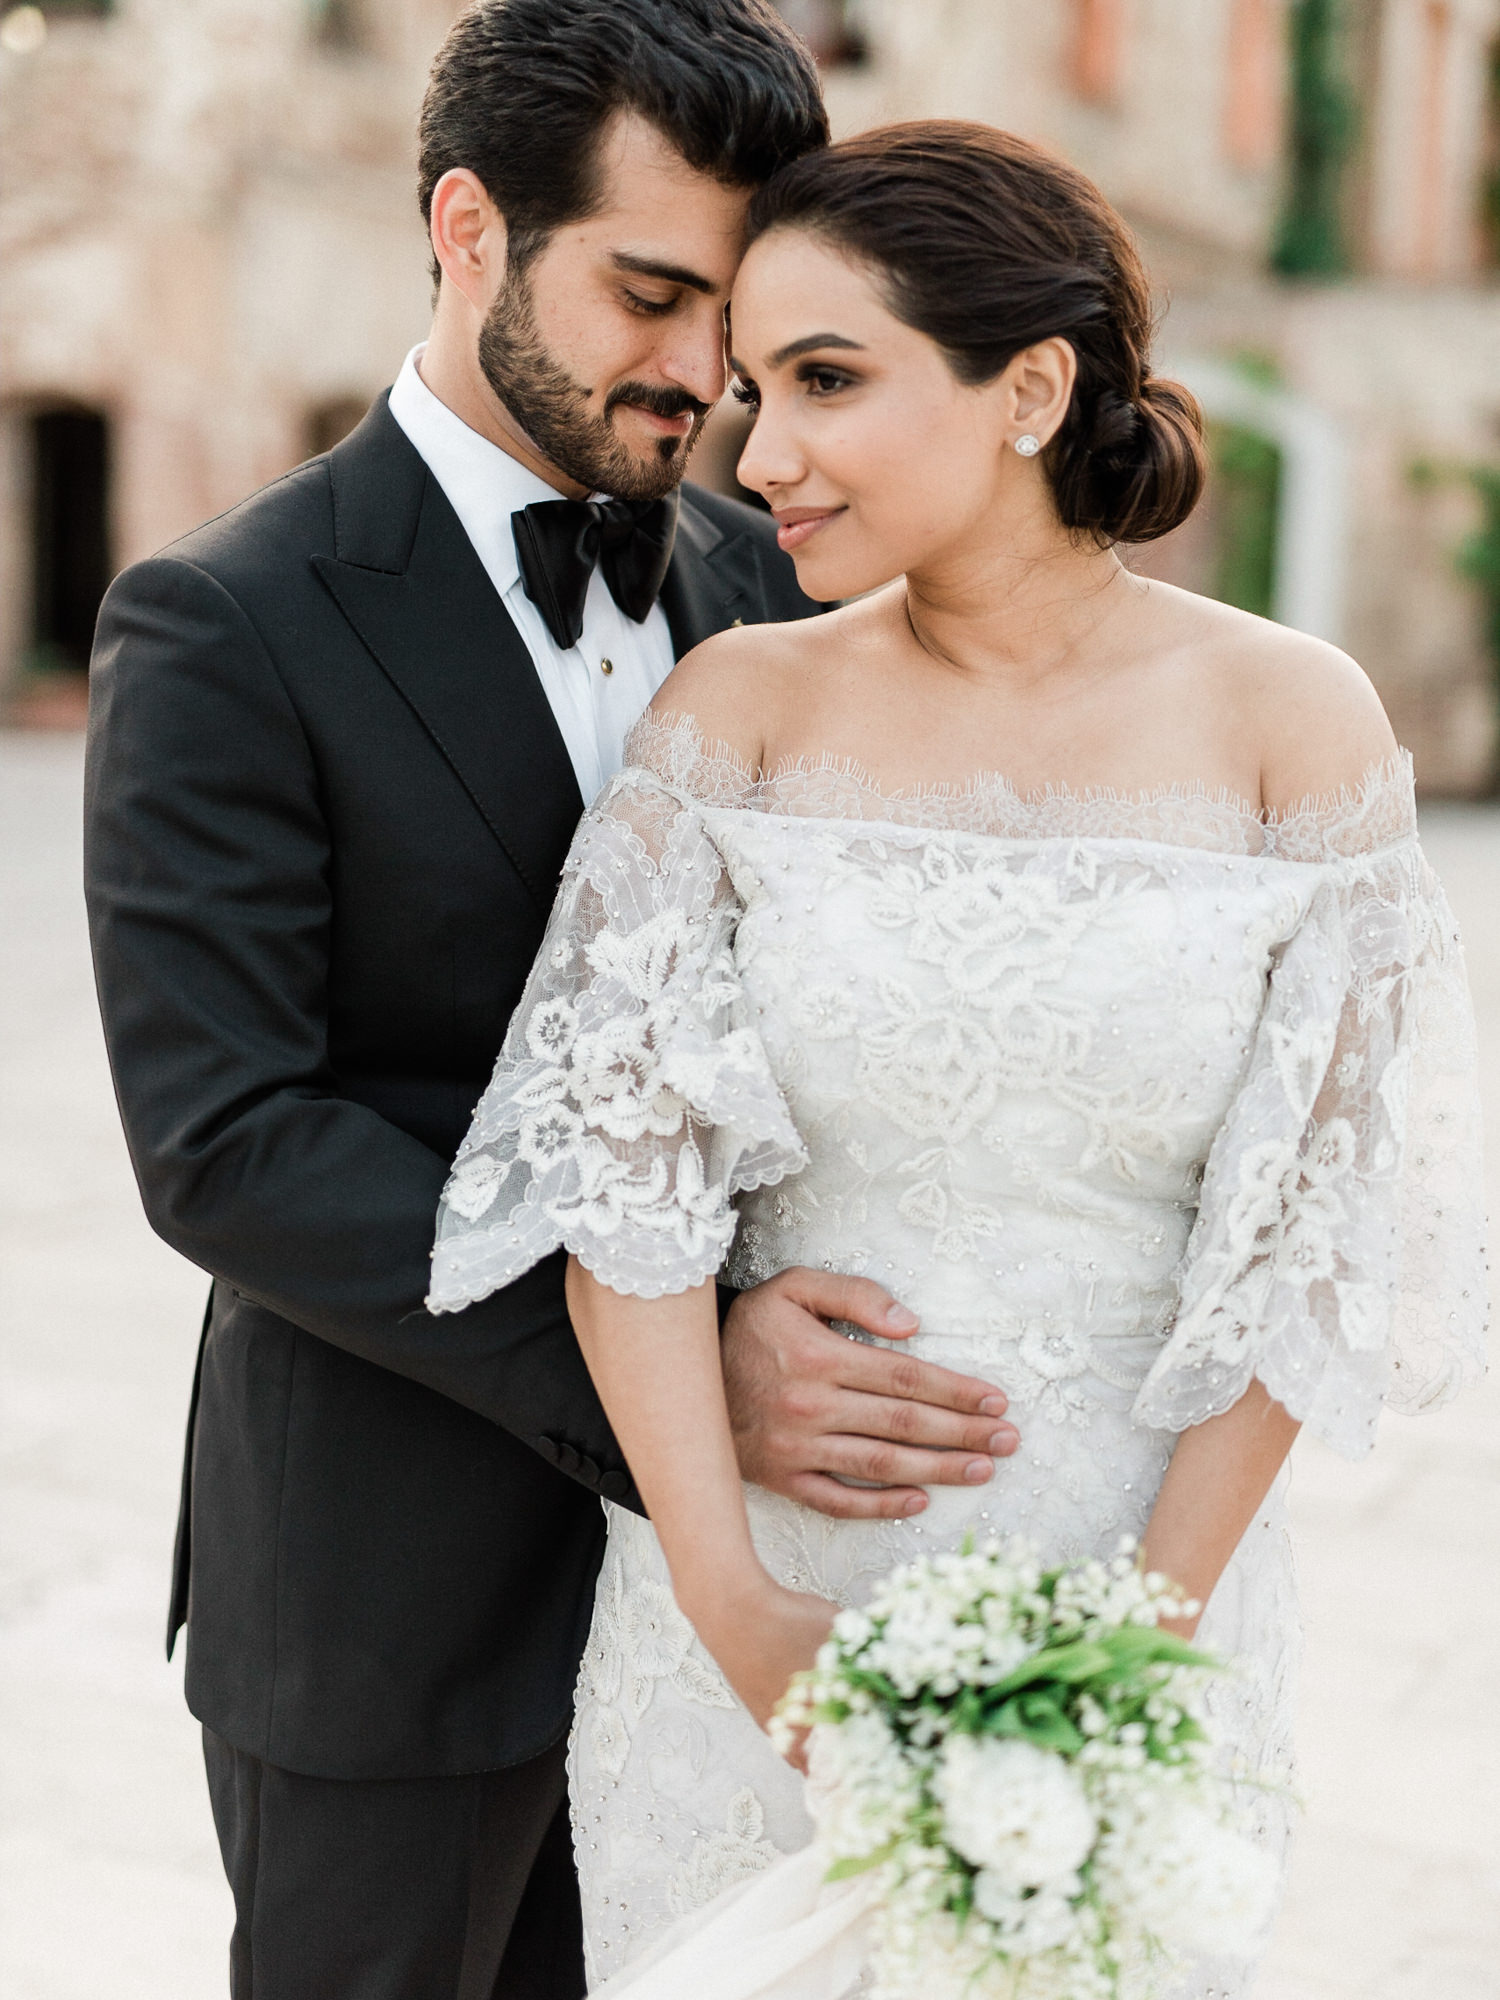 Groom holds his bride wearing applique lace gown - Gianluca Adovasio Photography